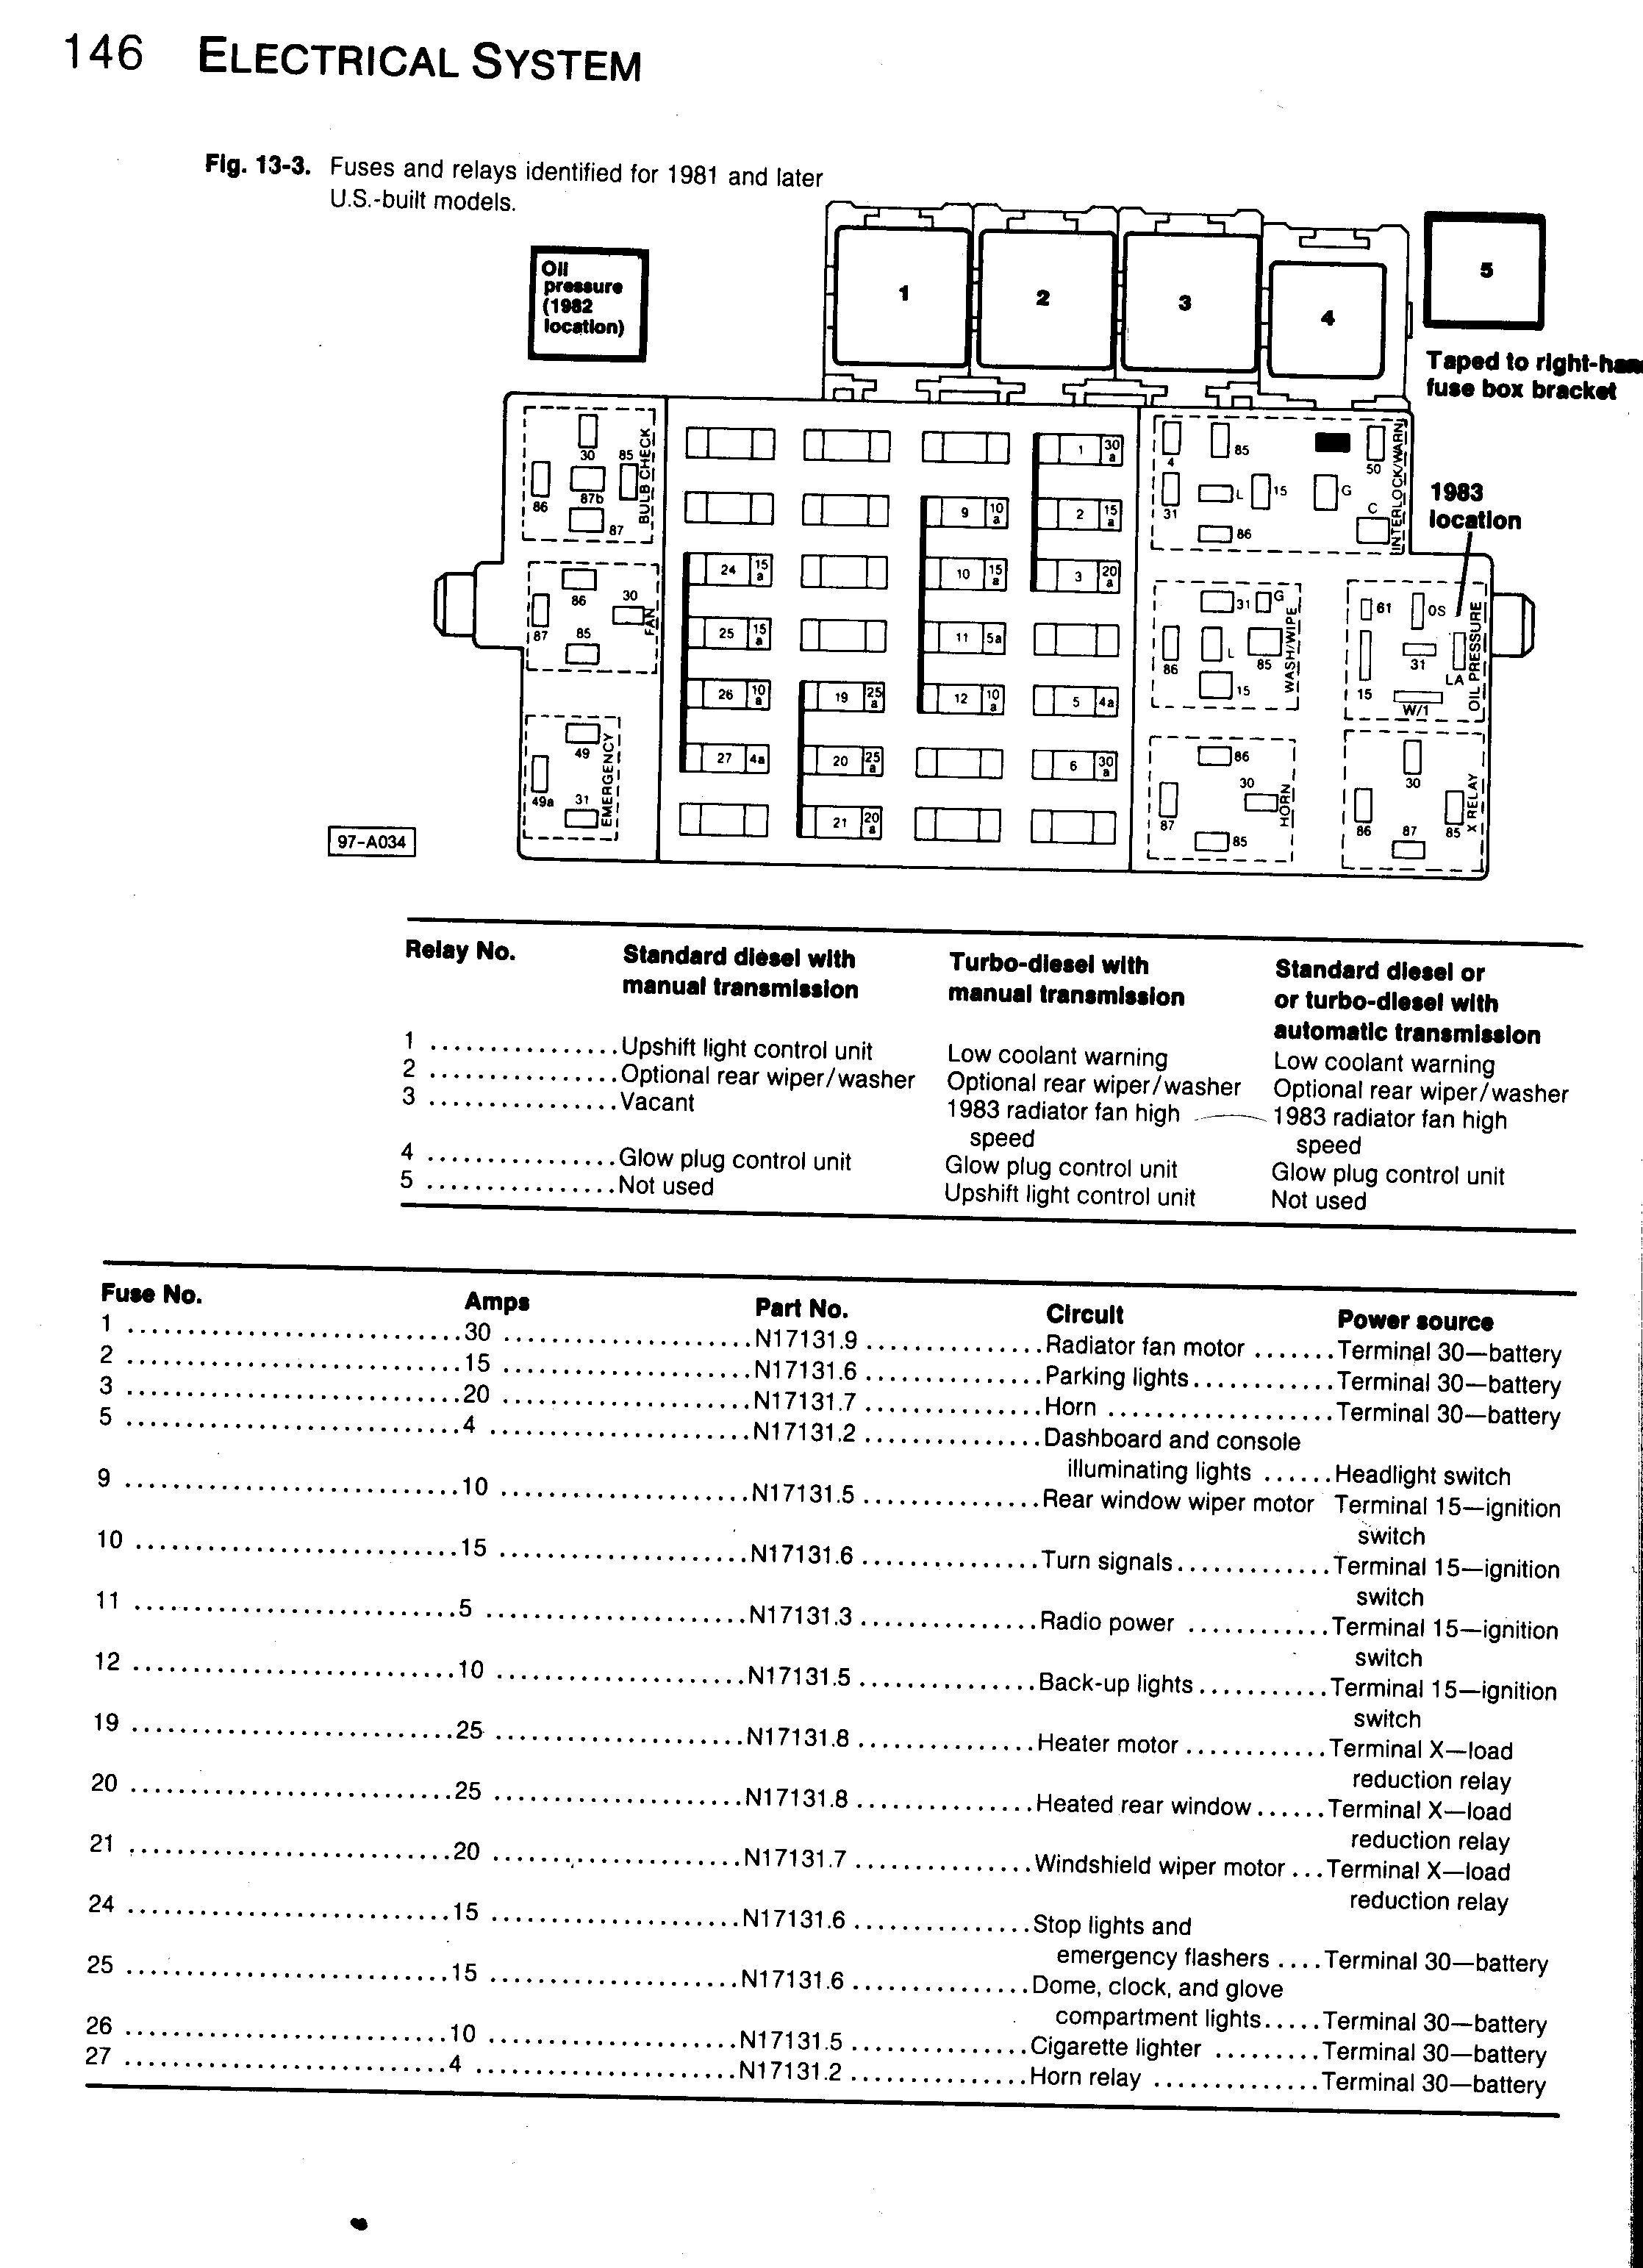 2001 volkswagen gti fuse diagram detailed schematics diagram rh  antonartgallery com 2014 jetta fuse box description 2014 vw jetta fuse box